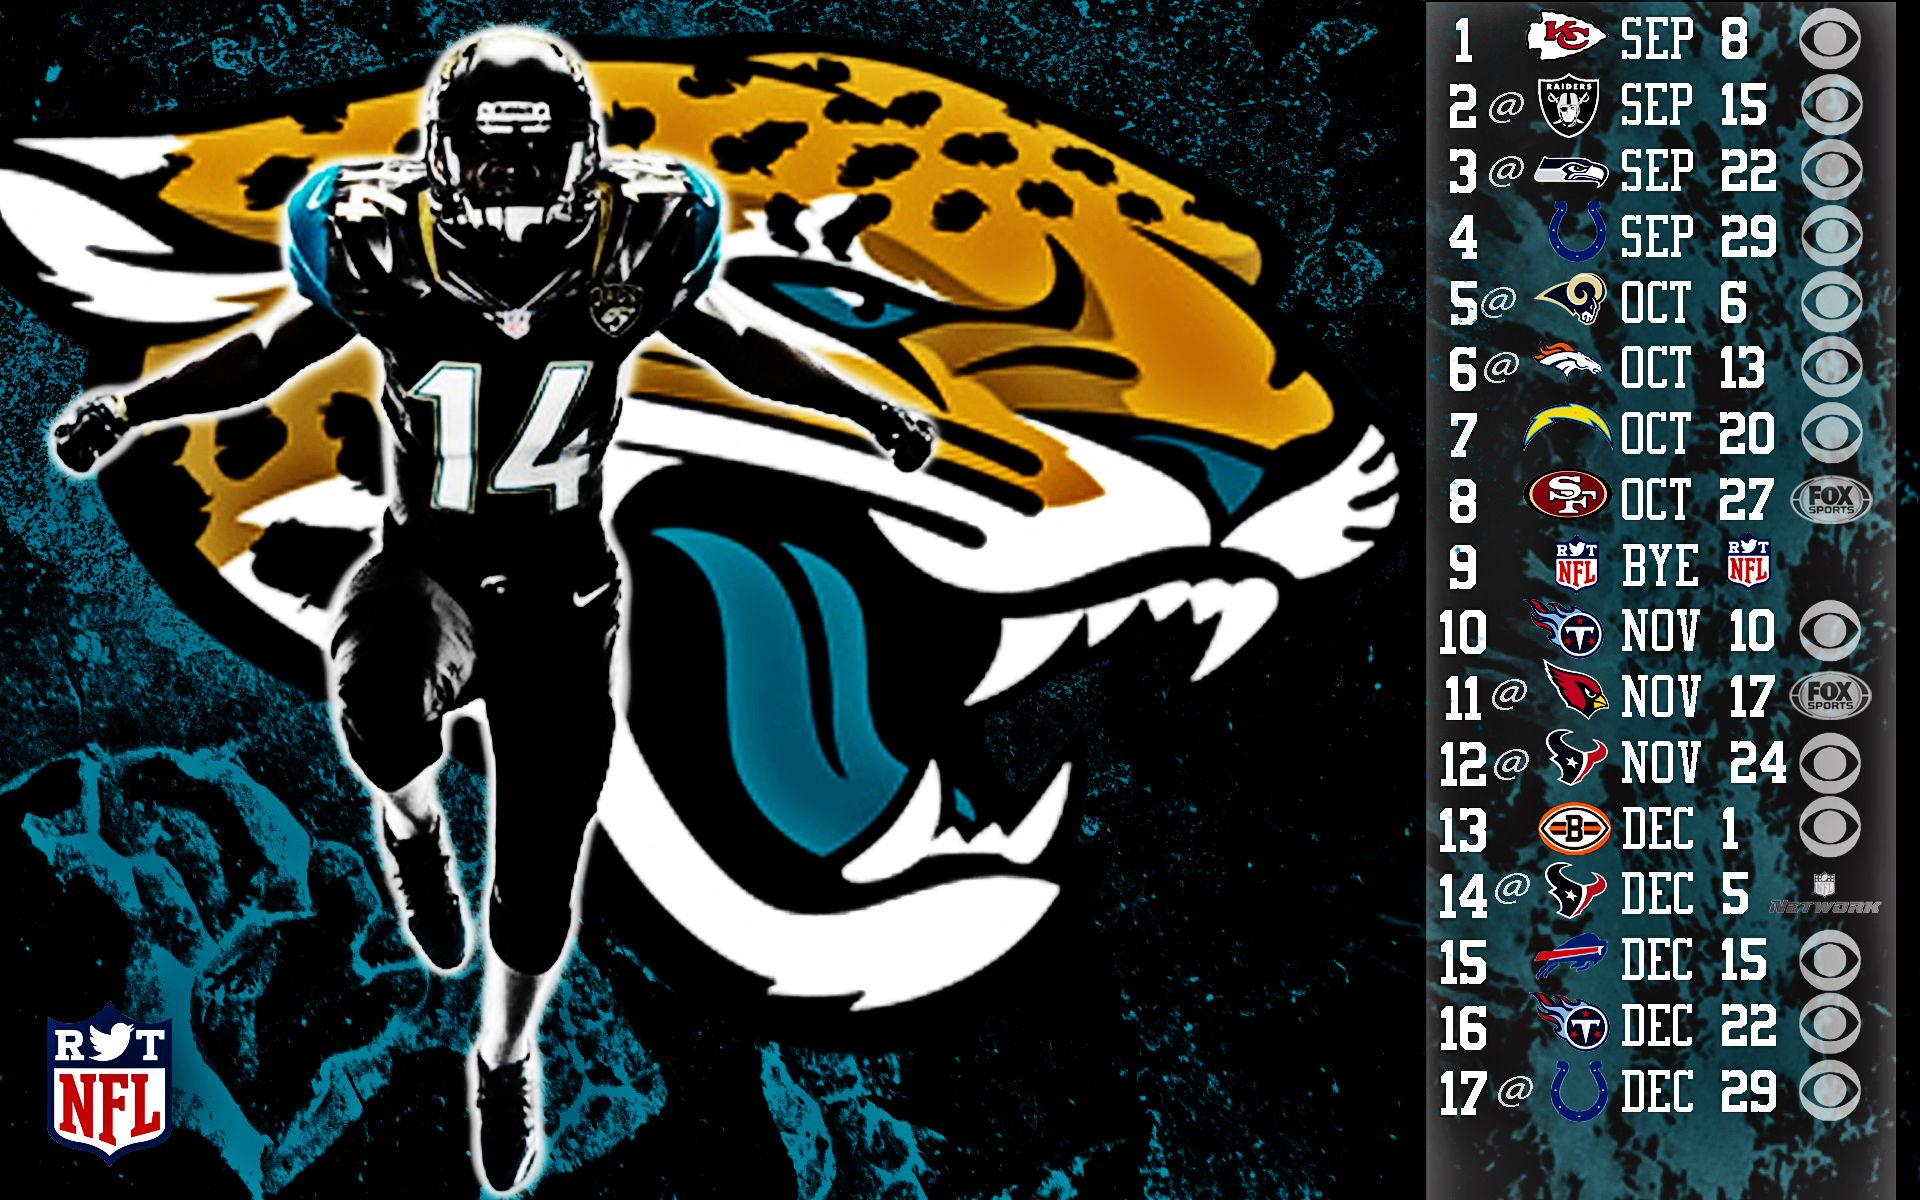 2013 Jacksonville Jaguars football nfl wallpaper backgroundJacksonville Jaguars Wallpaper 2013